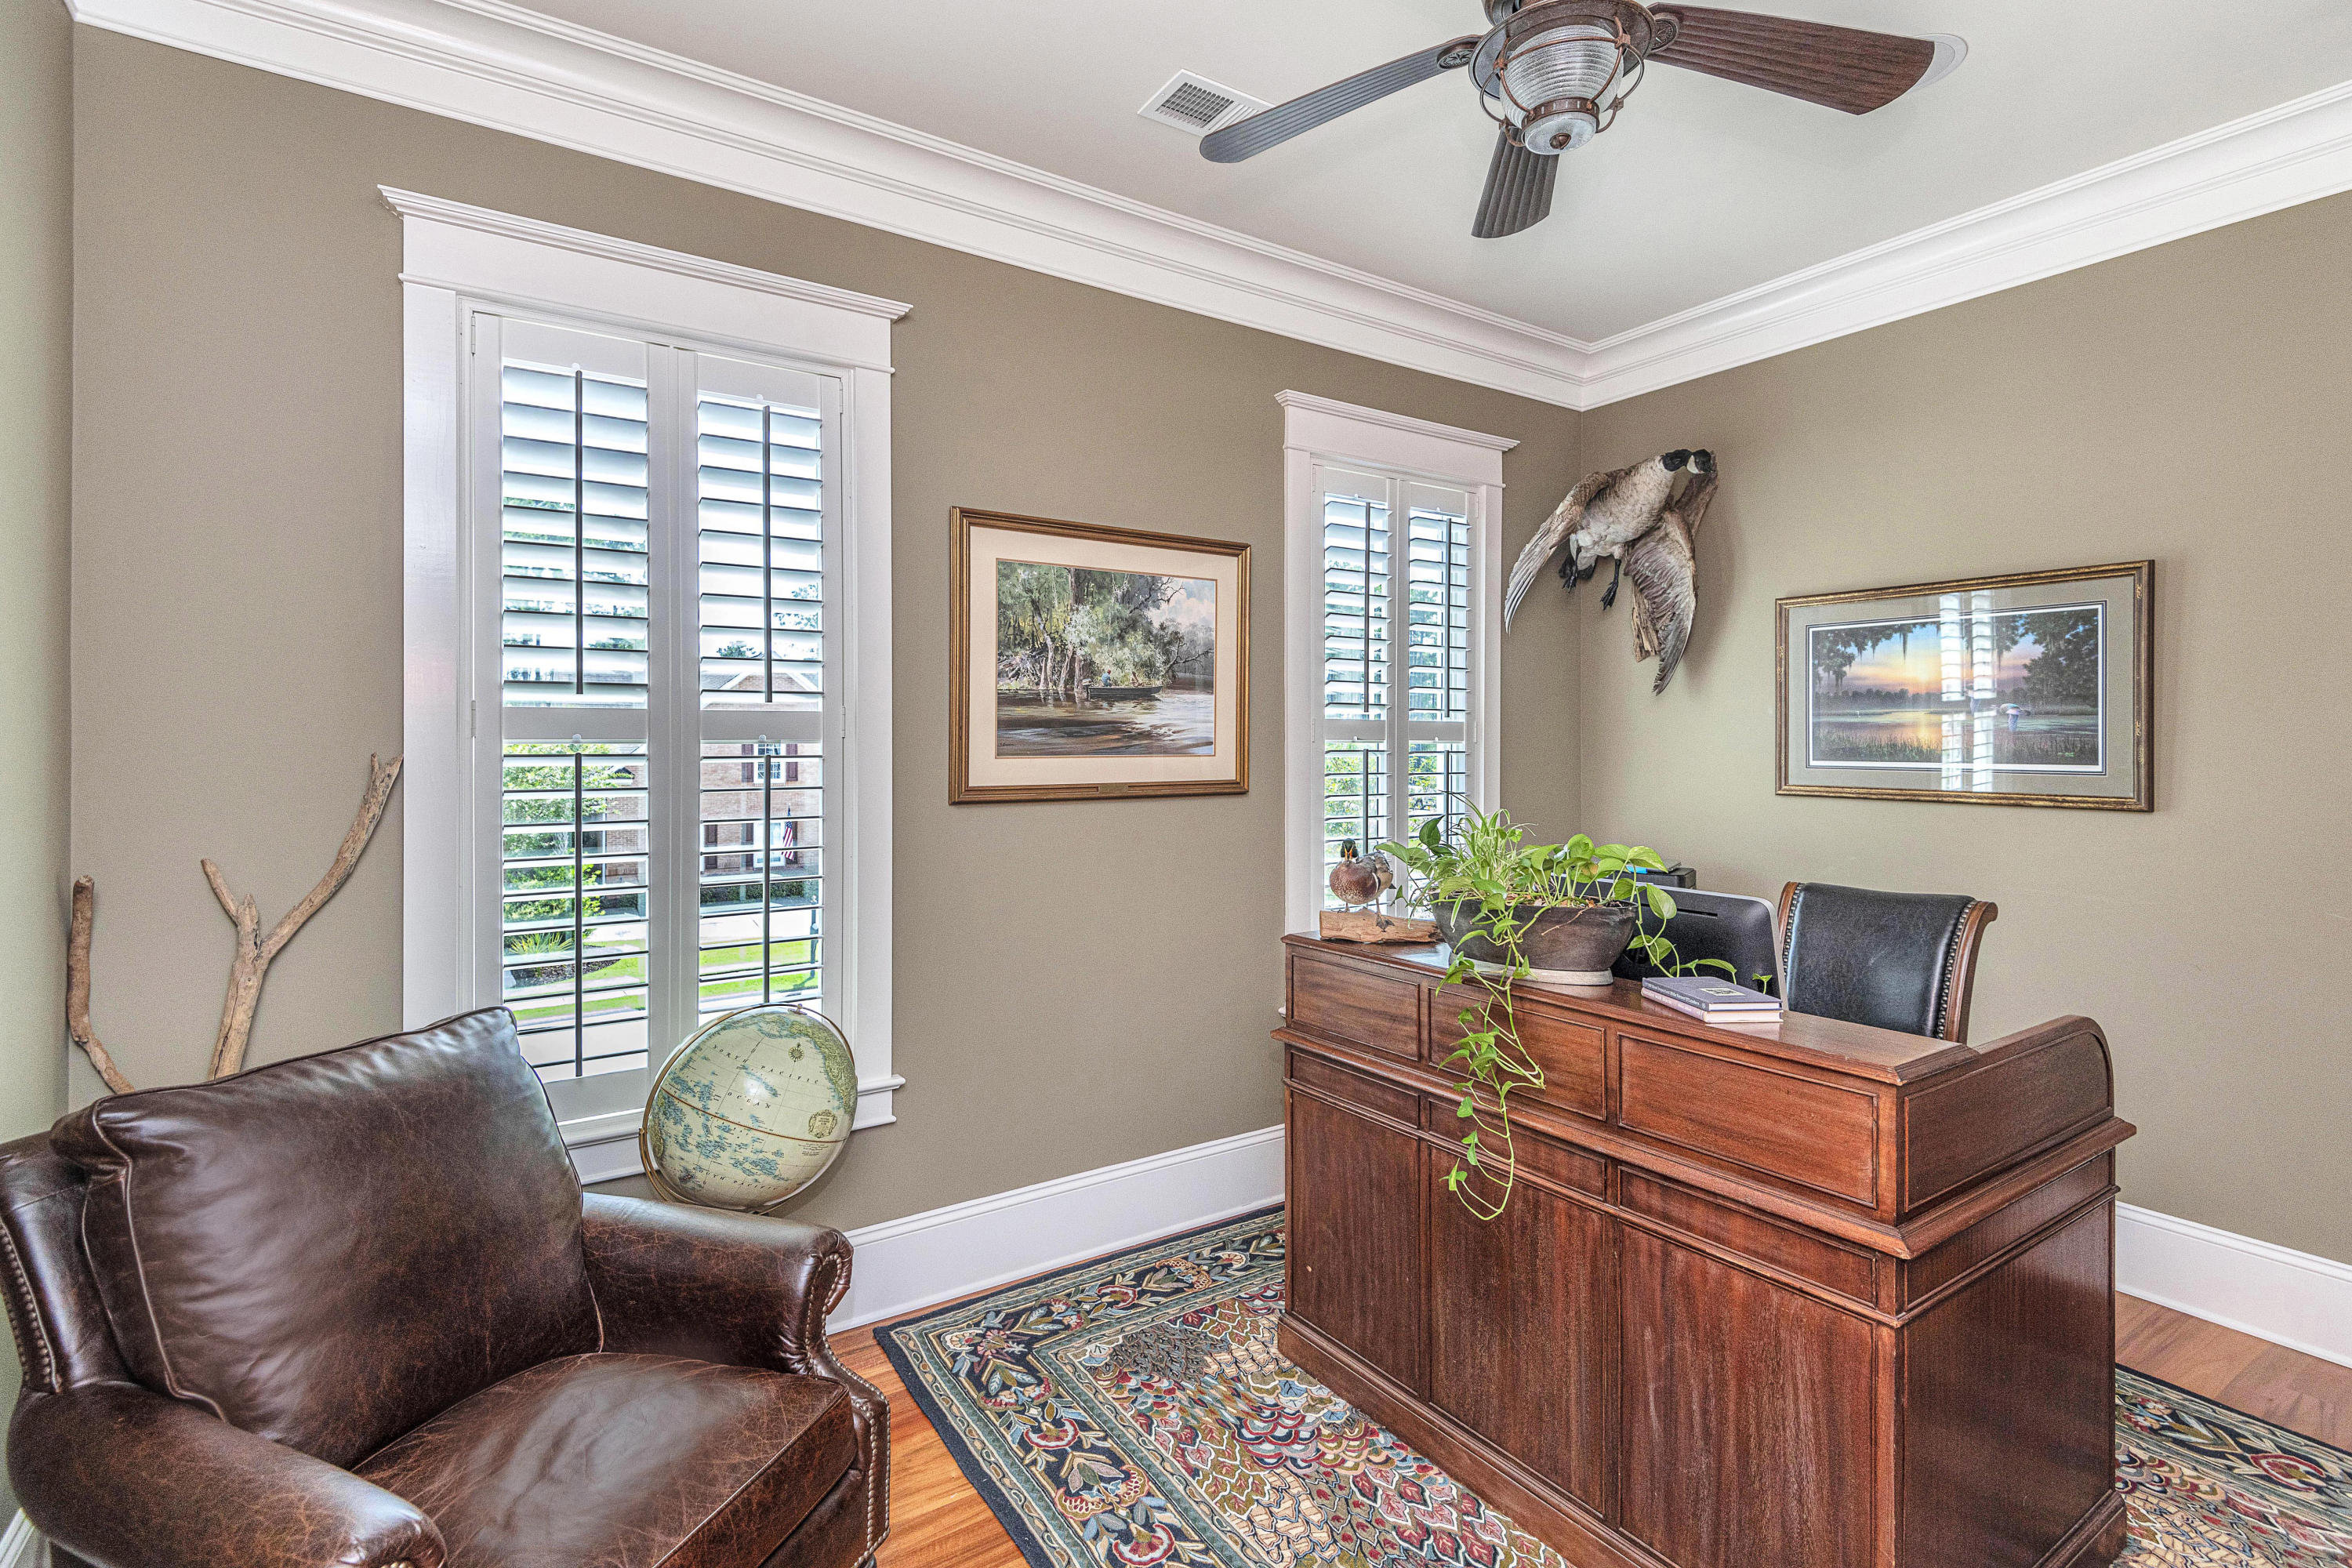 Dunes West Homes For Sale - 2836 Stay Sail, Mount Pleasant, SC - 37